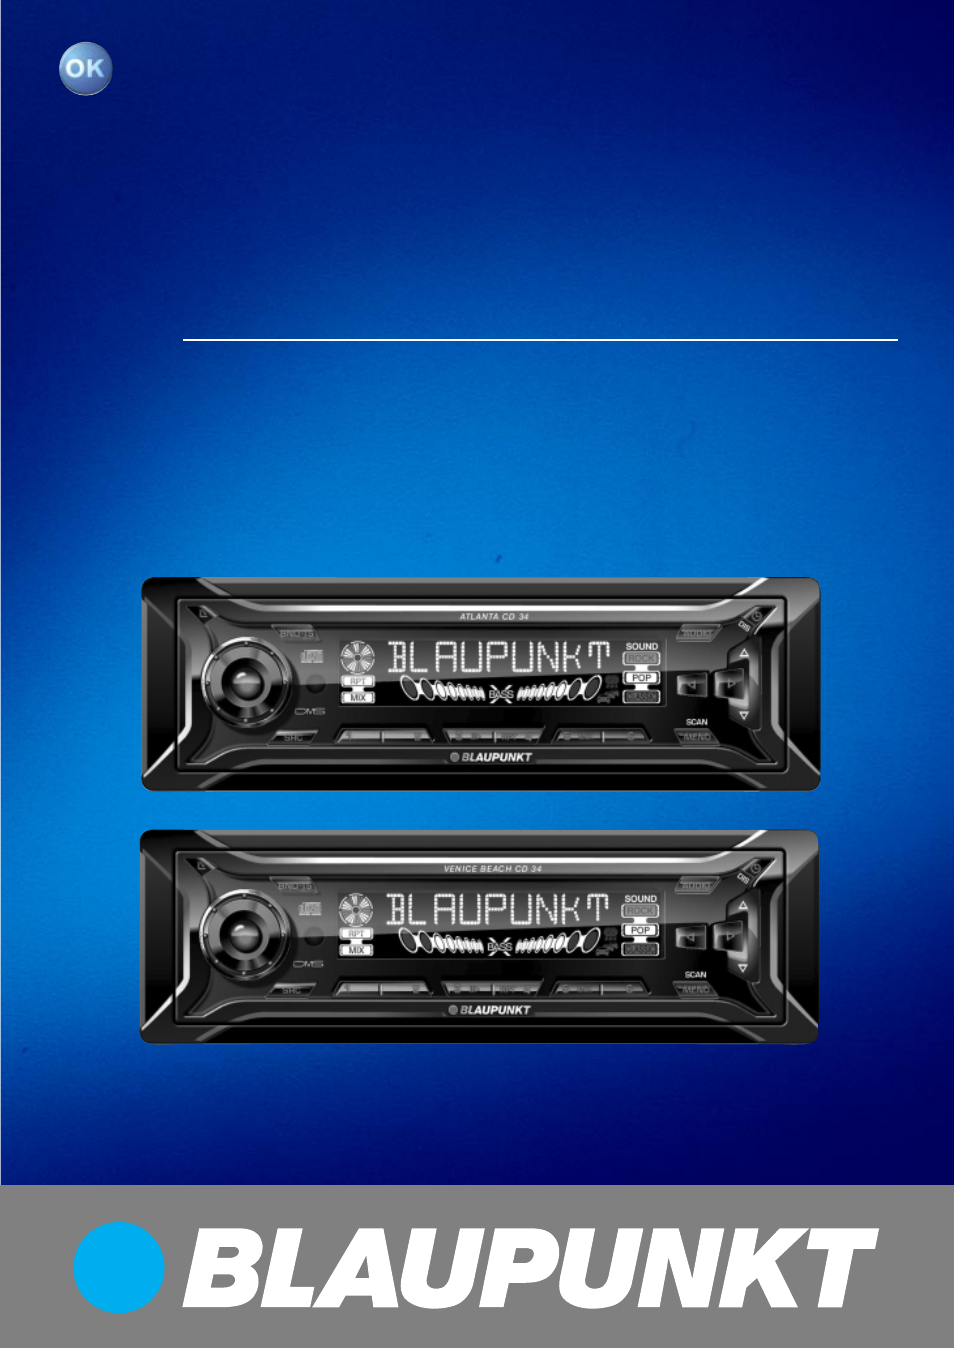 Blaupunkt Atlanta CD34 User Manual | 84 pages | Also for: Venice Beach CD34